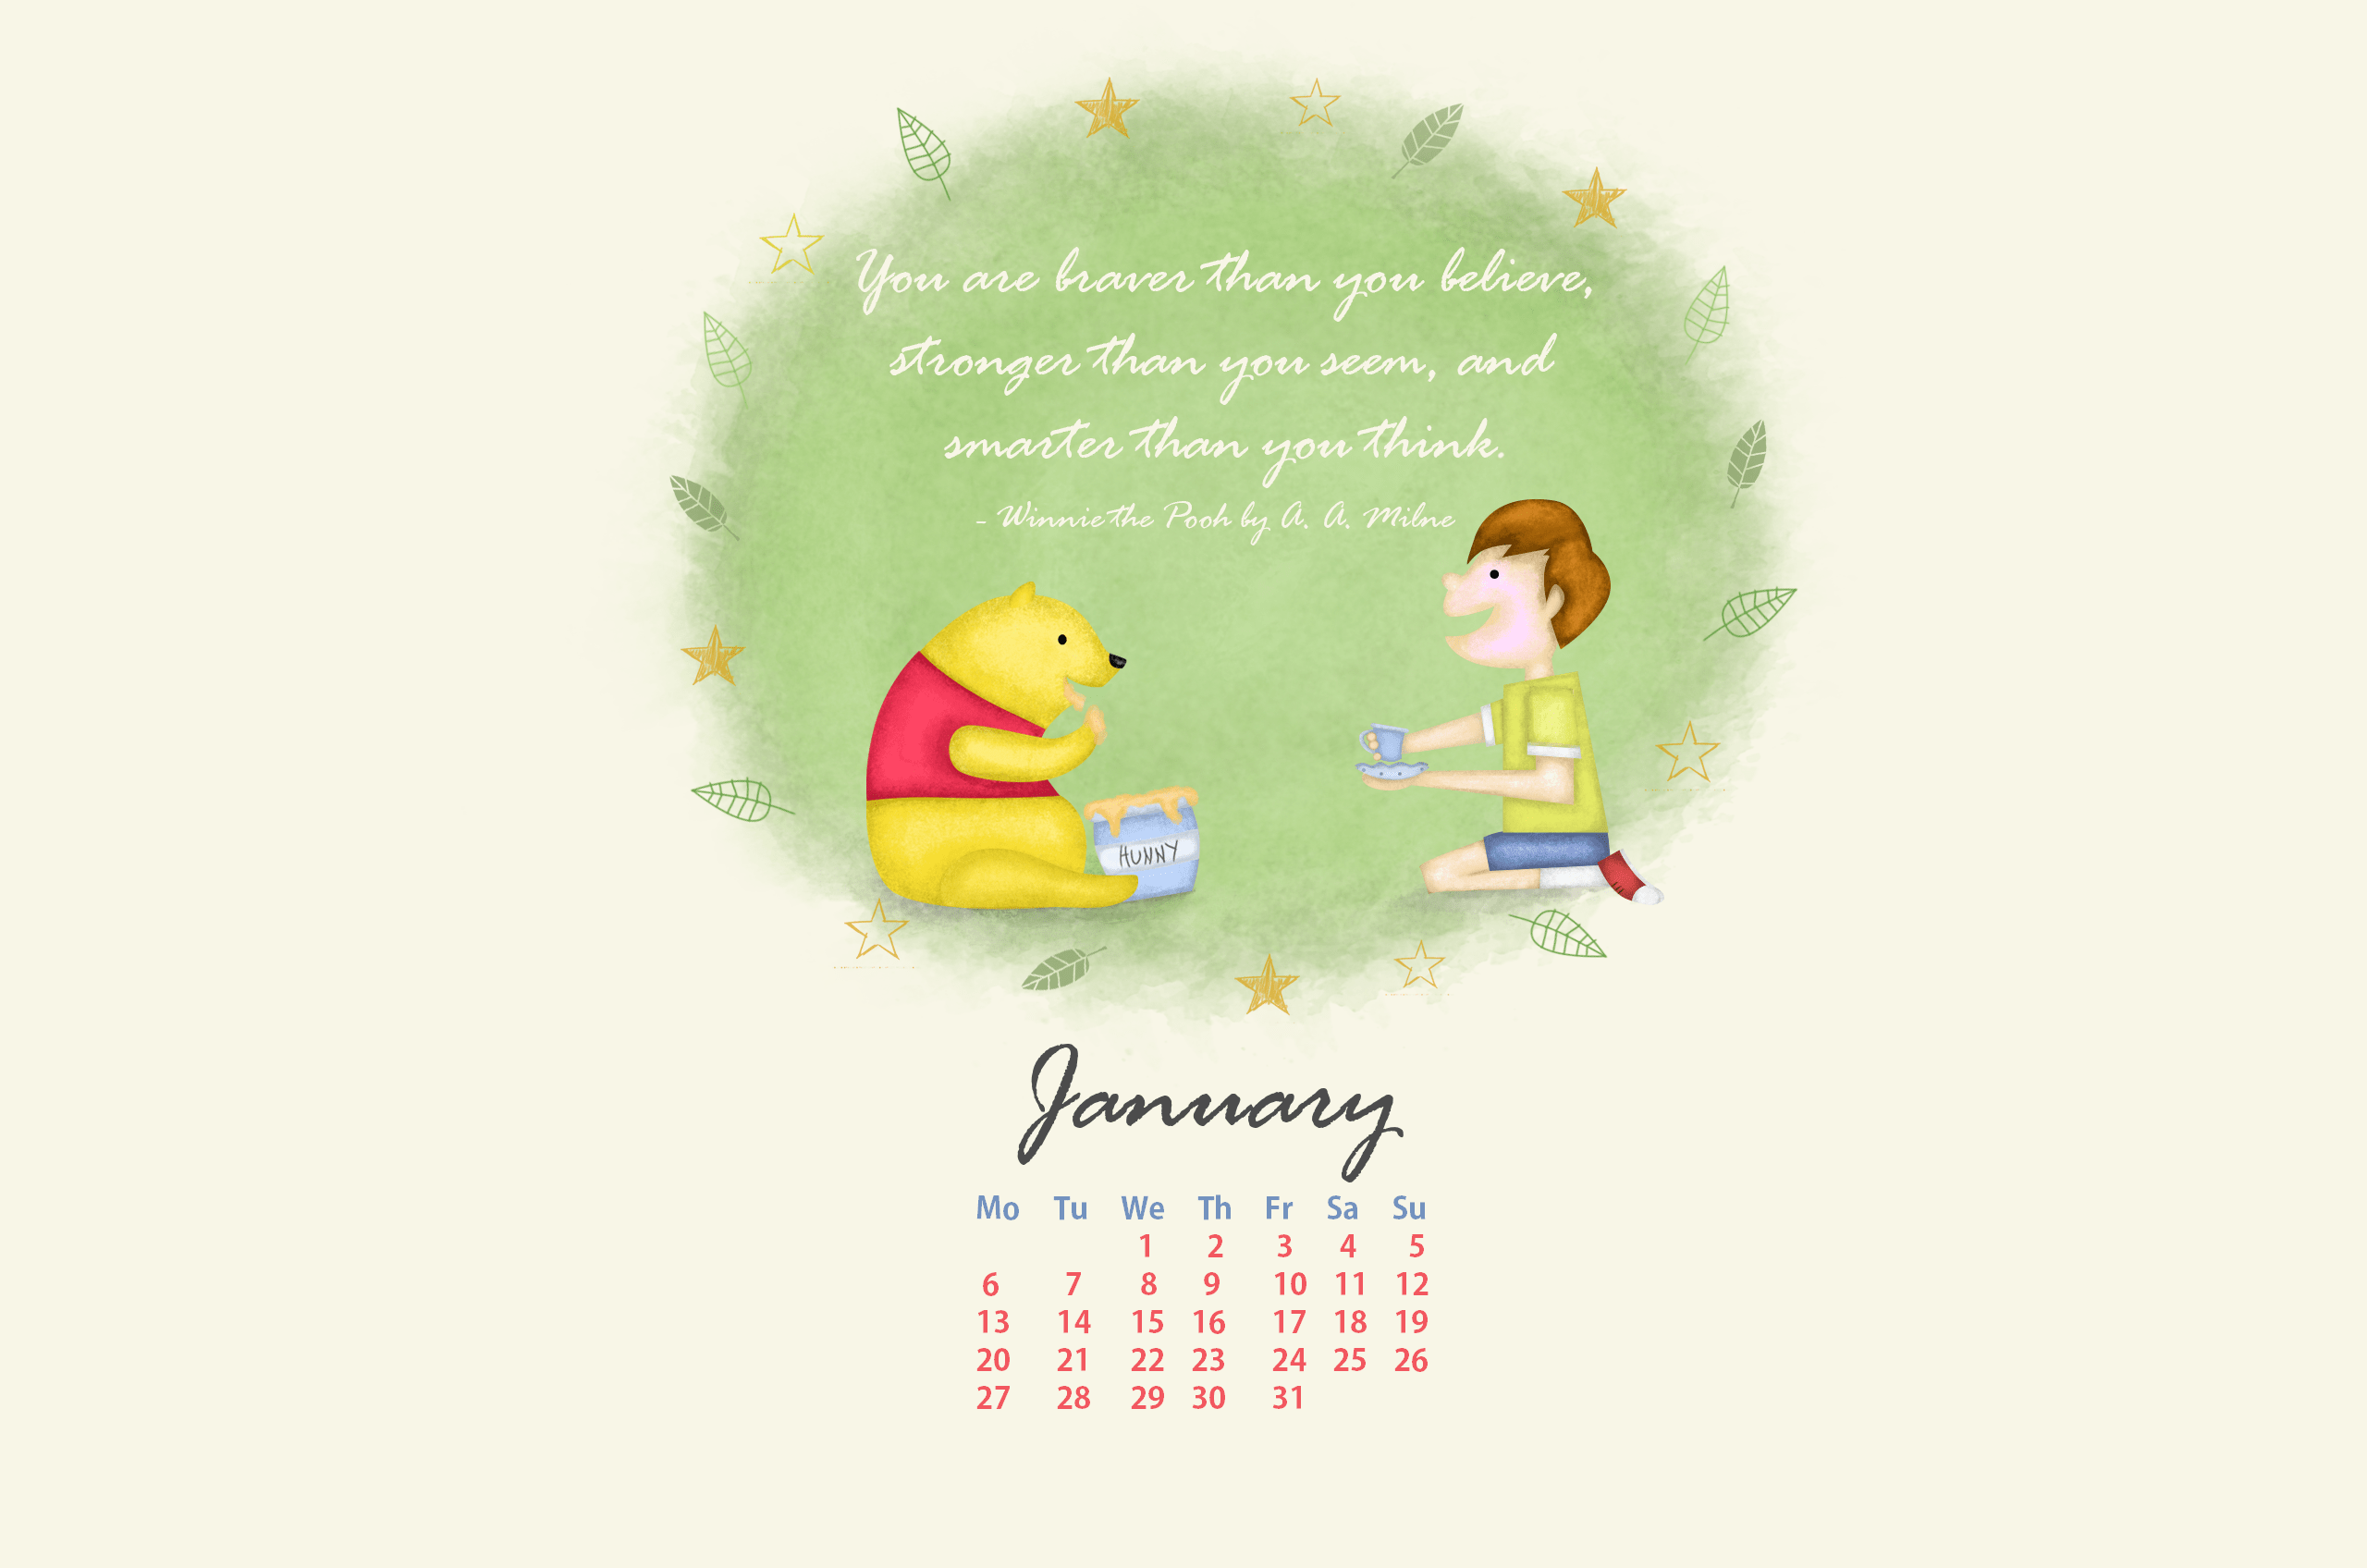 Wallpaper January 2020 Calendar